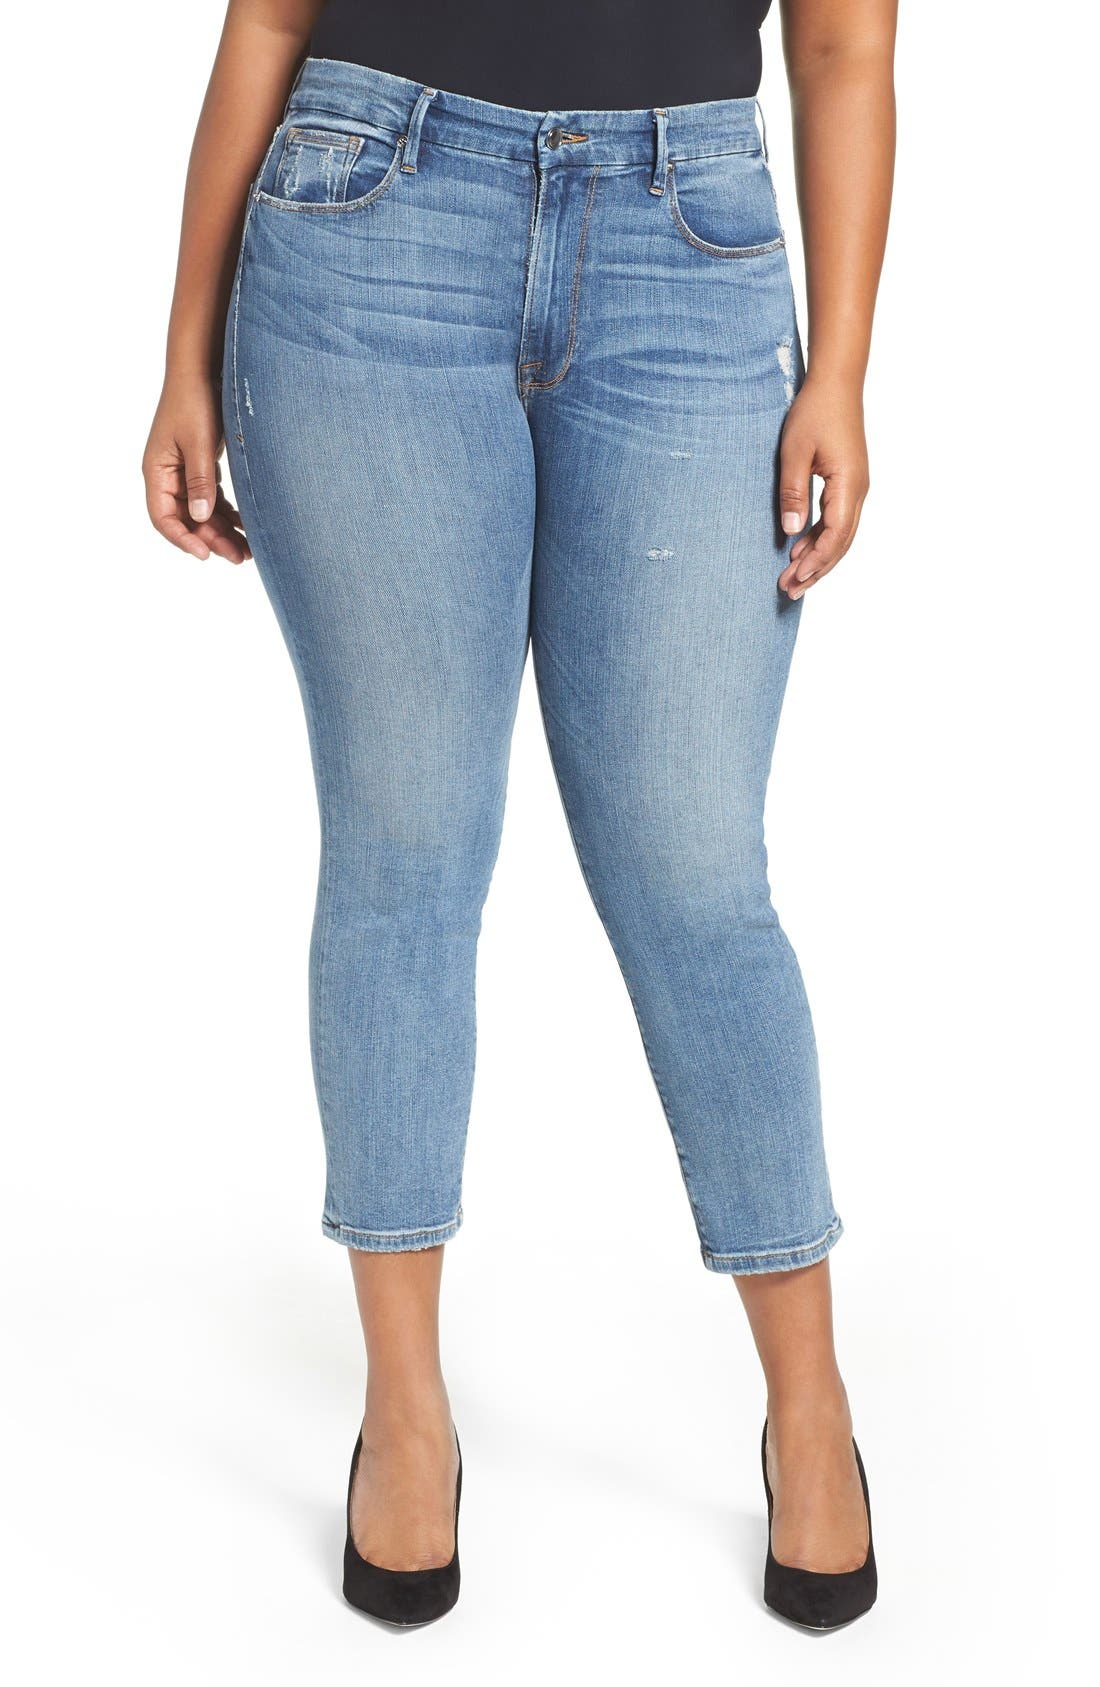 Good Cuts High Rise Boyfriend Jeans,                             Alternate thumbnail 8, color,                             Blue 012